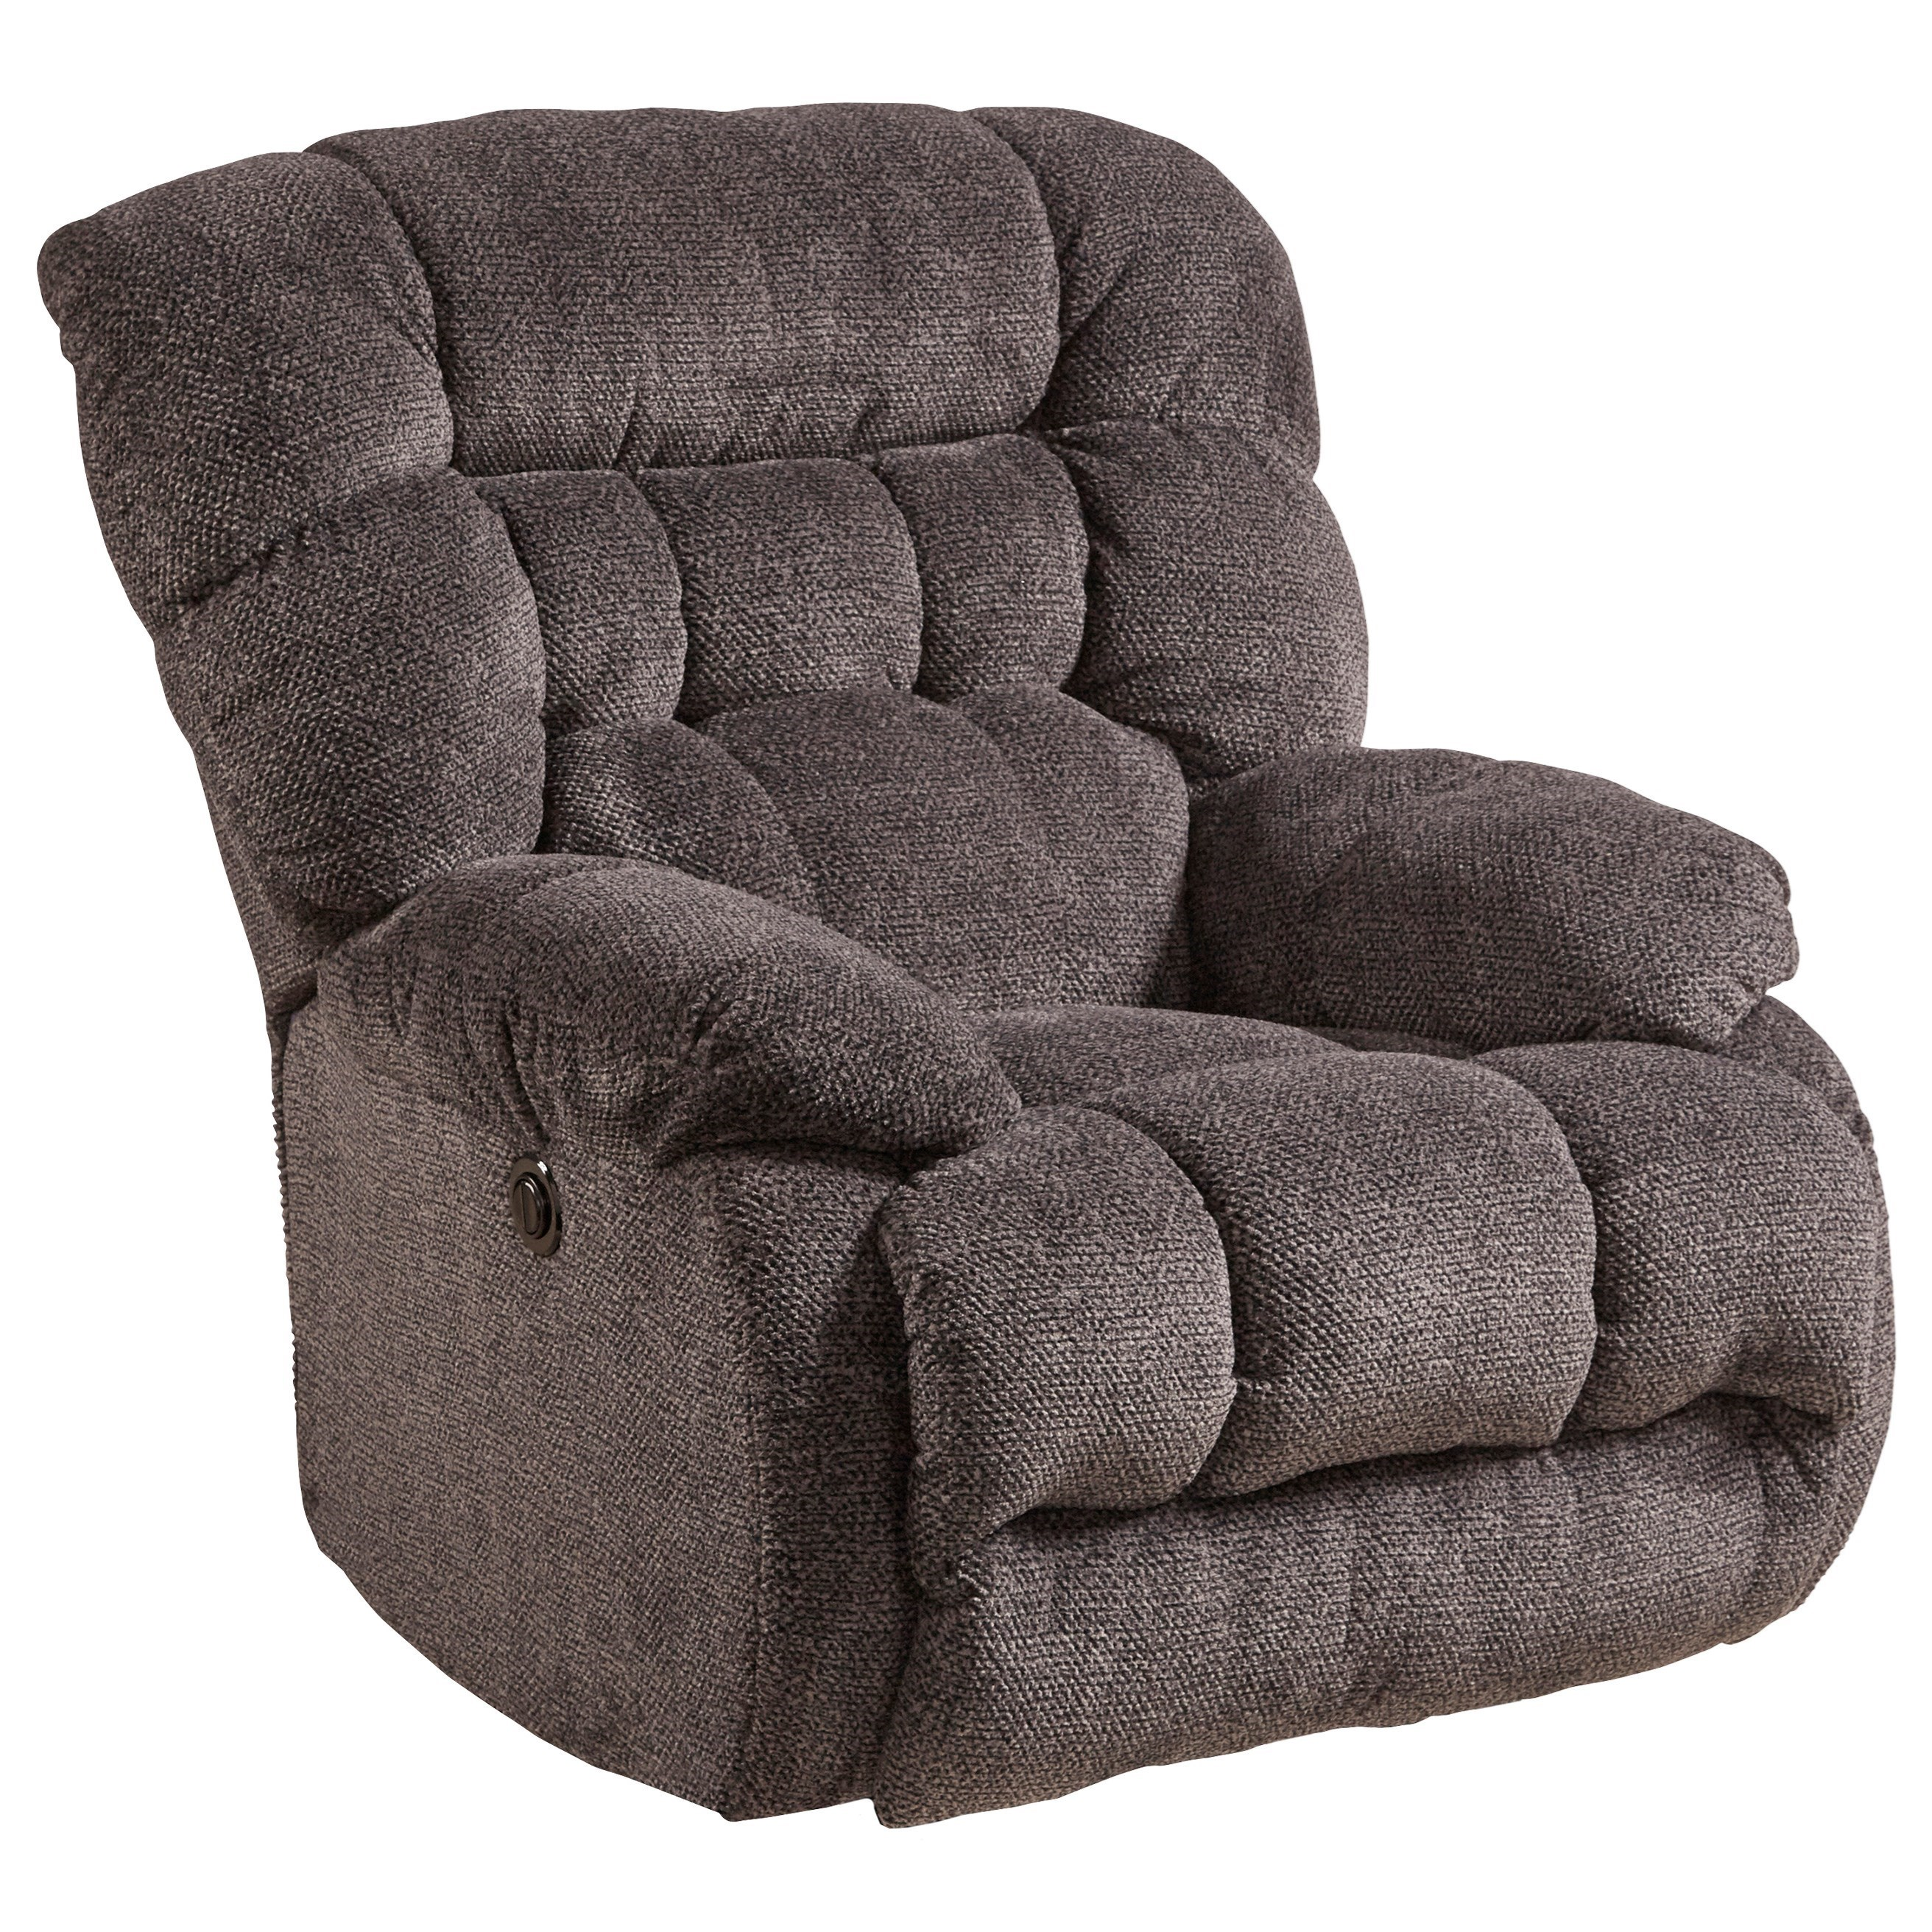 Catnapper Daly Casual Power Lay Flat Recliner With Pillow Arms Lindy S Furniture Company Recliners